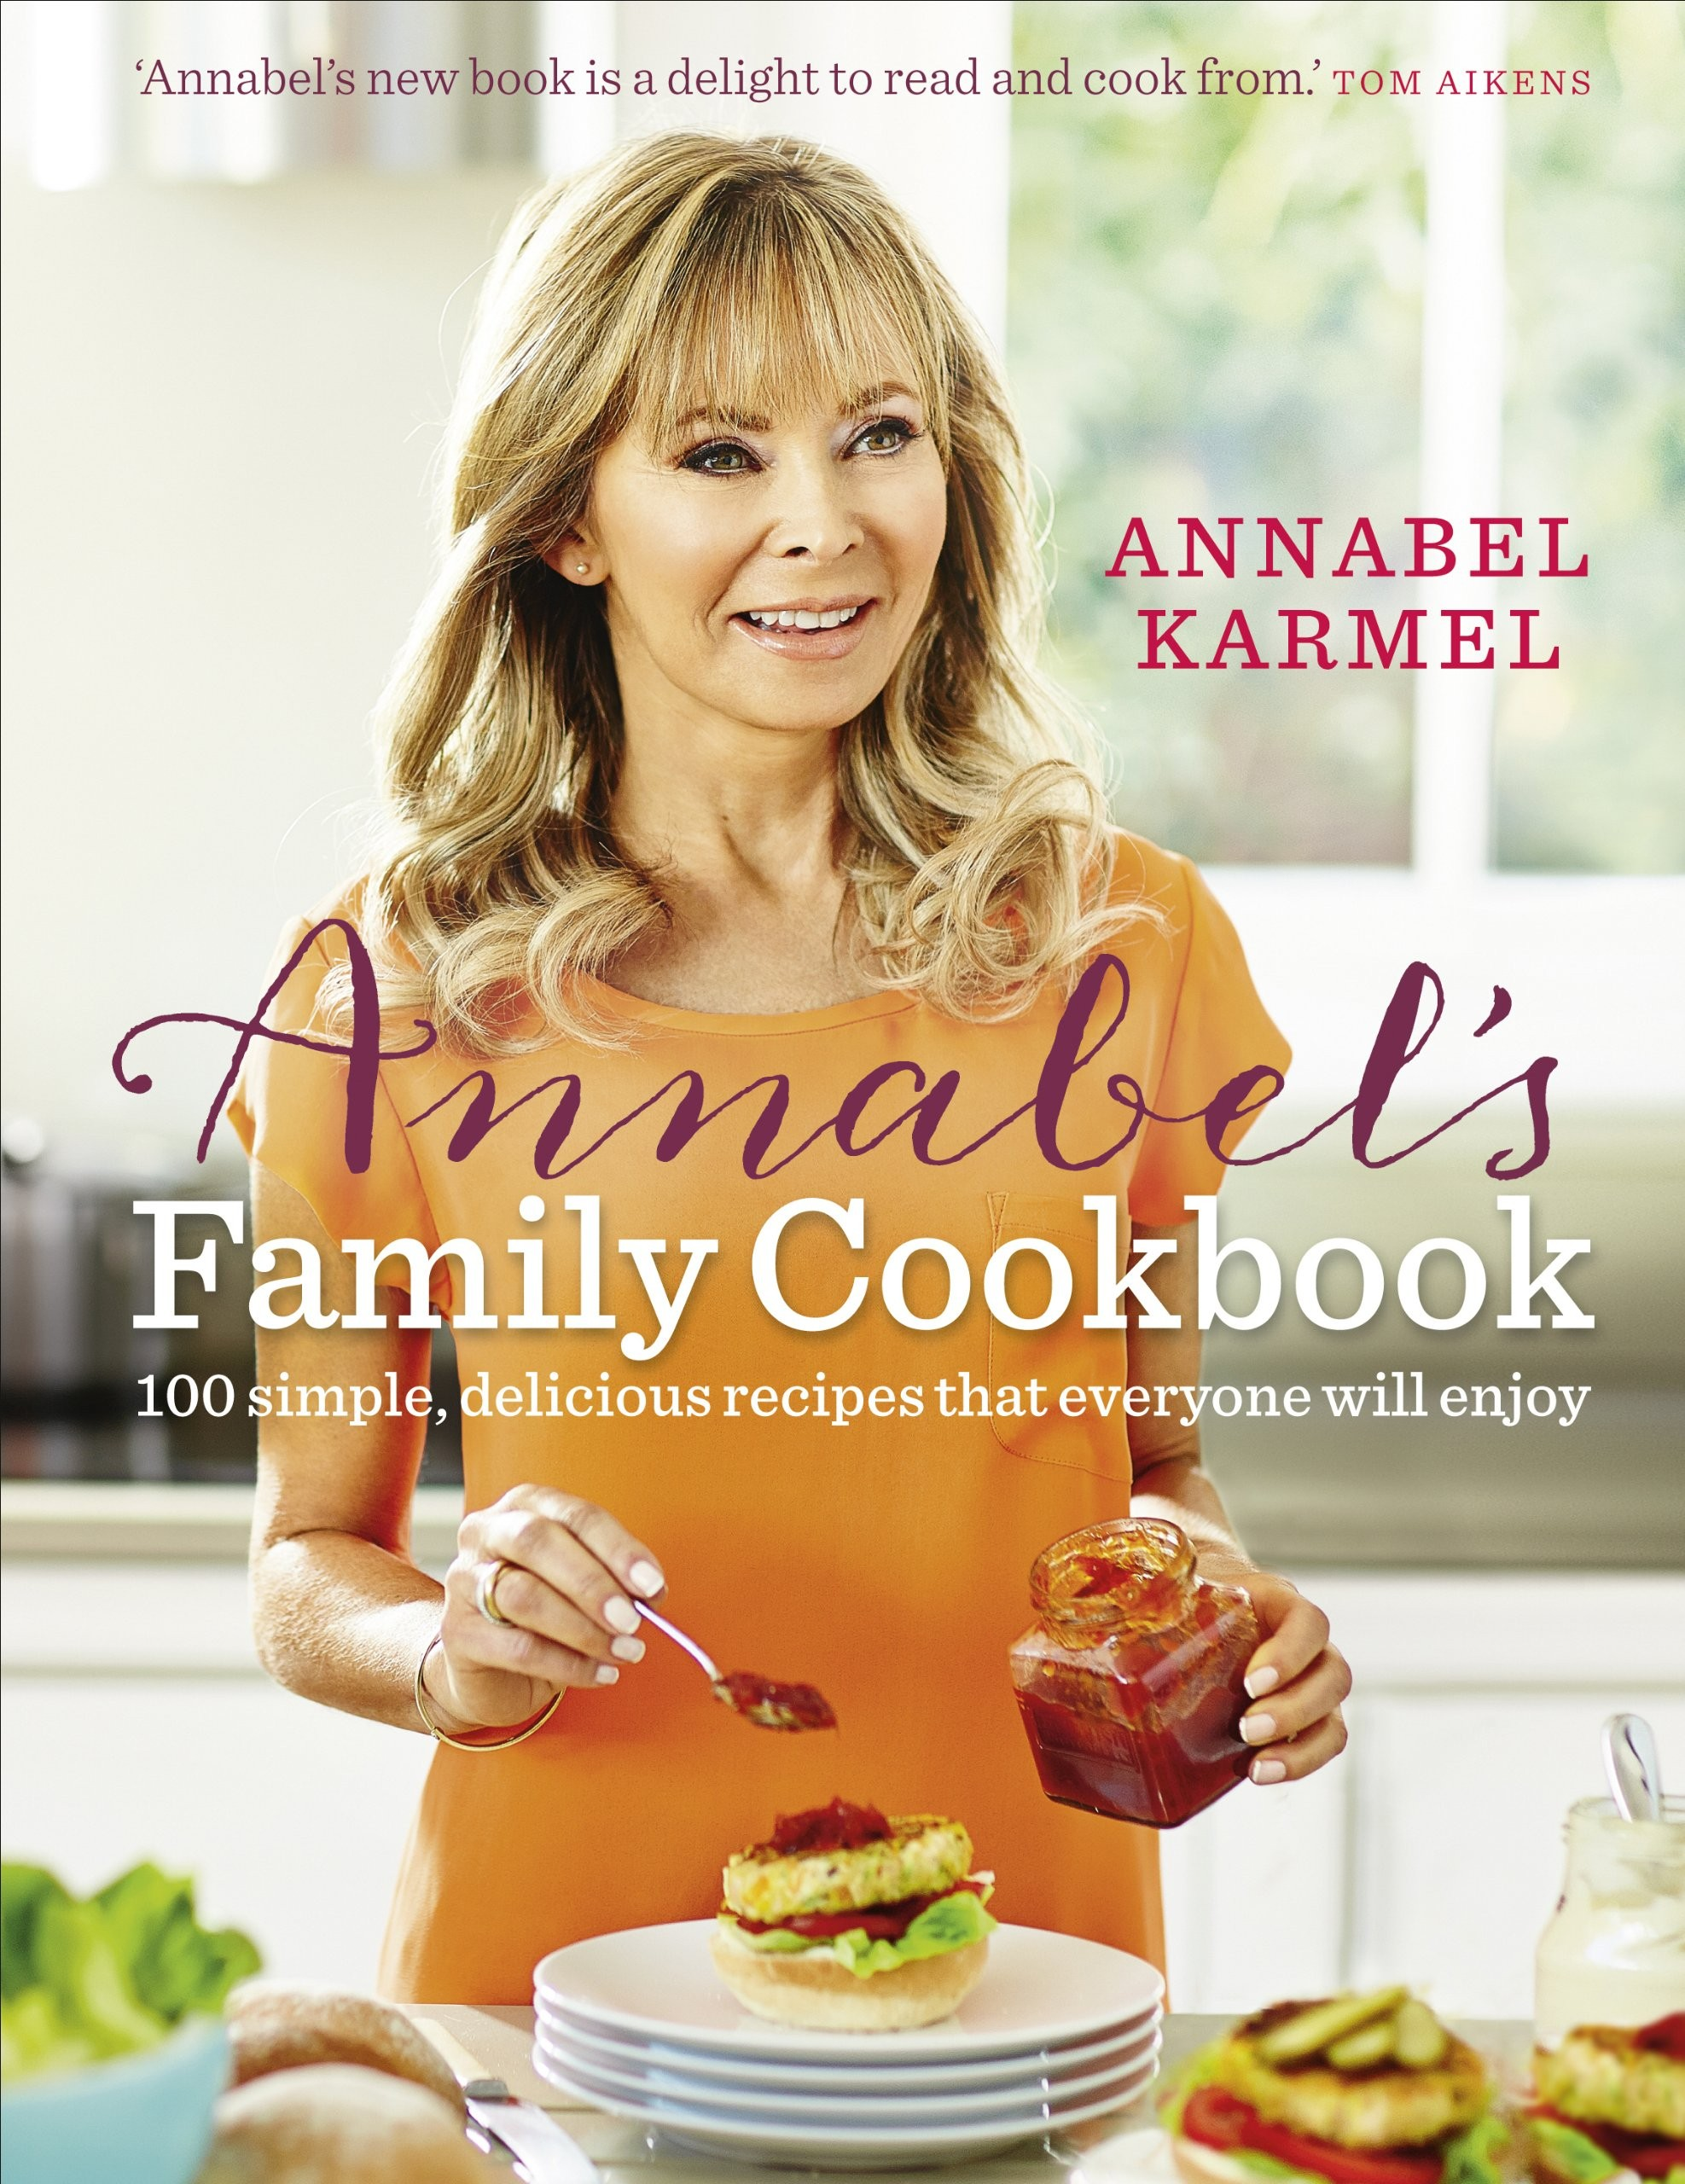 Annabel's Family Cookbook (£20, Ebury Press) is available to buy now.